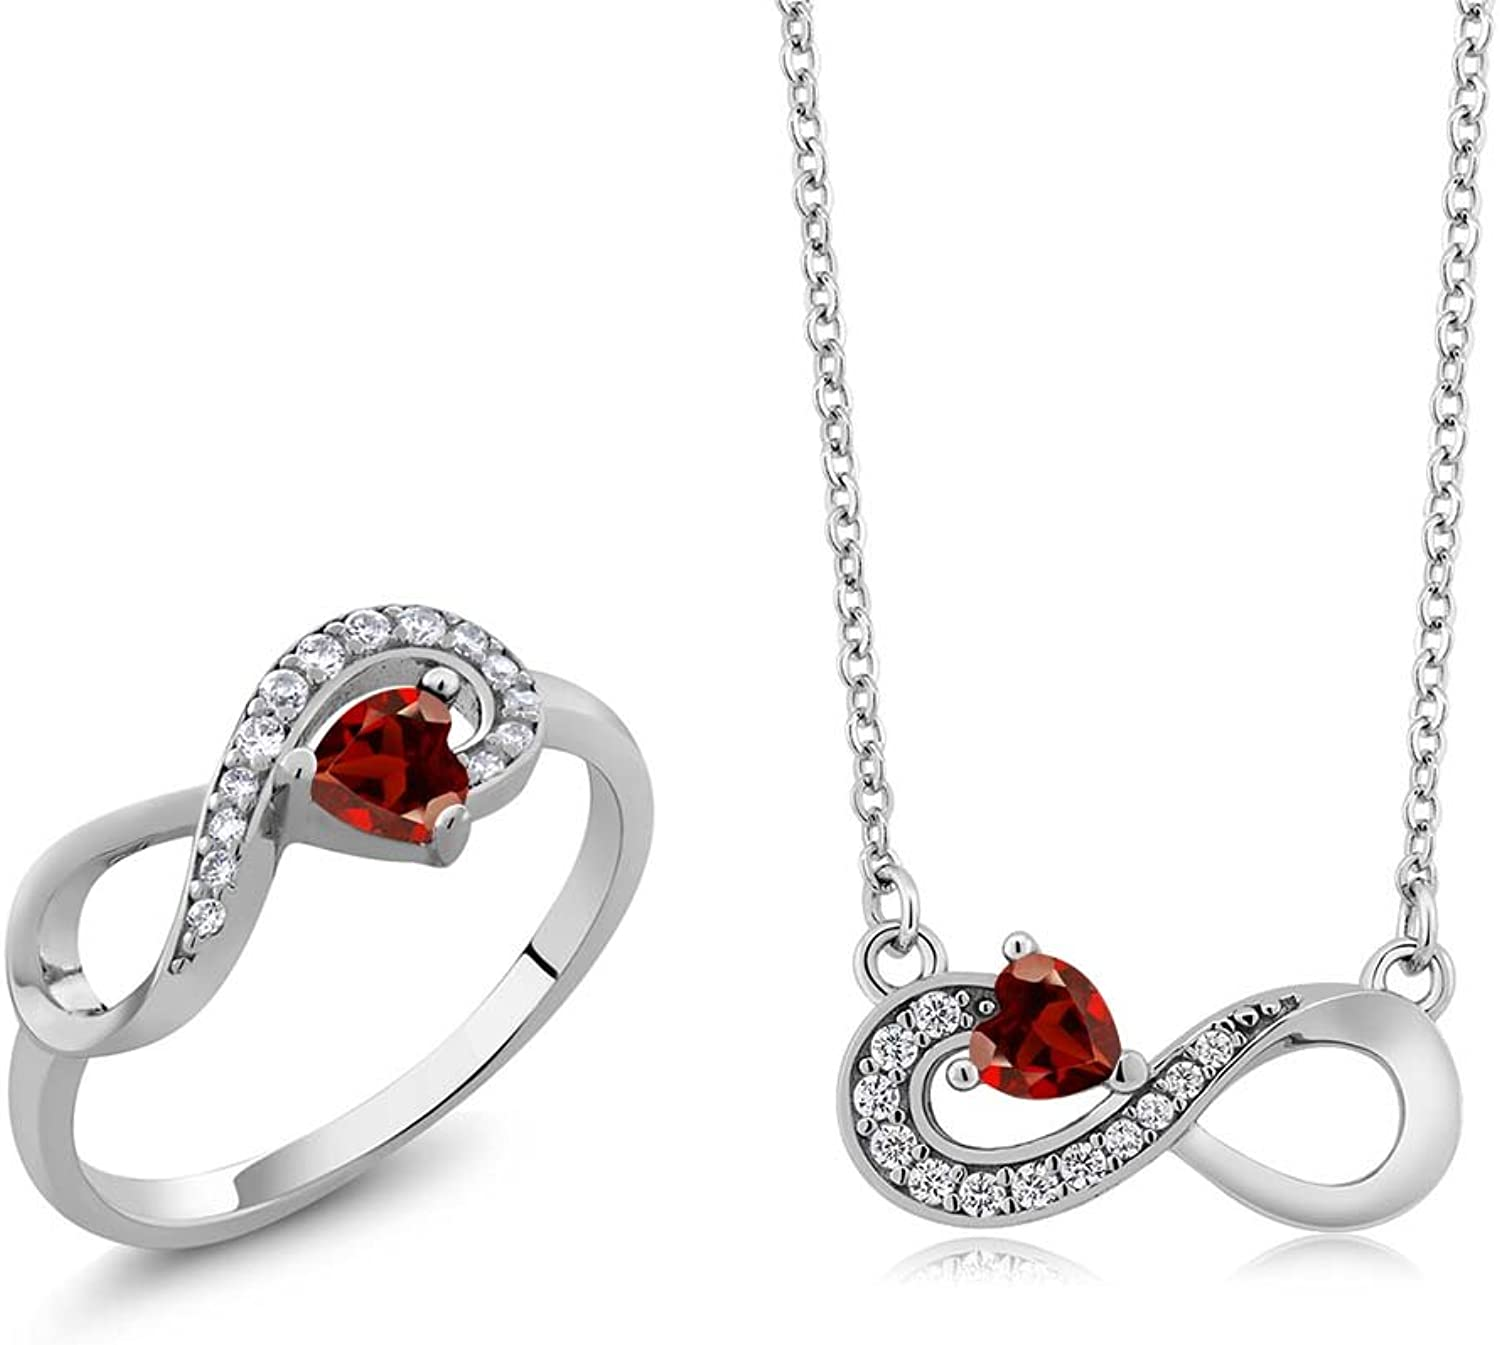 0.91 Ct Heart Shape Red Garnet 925 Sterling Silver Ring Pendant Set